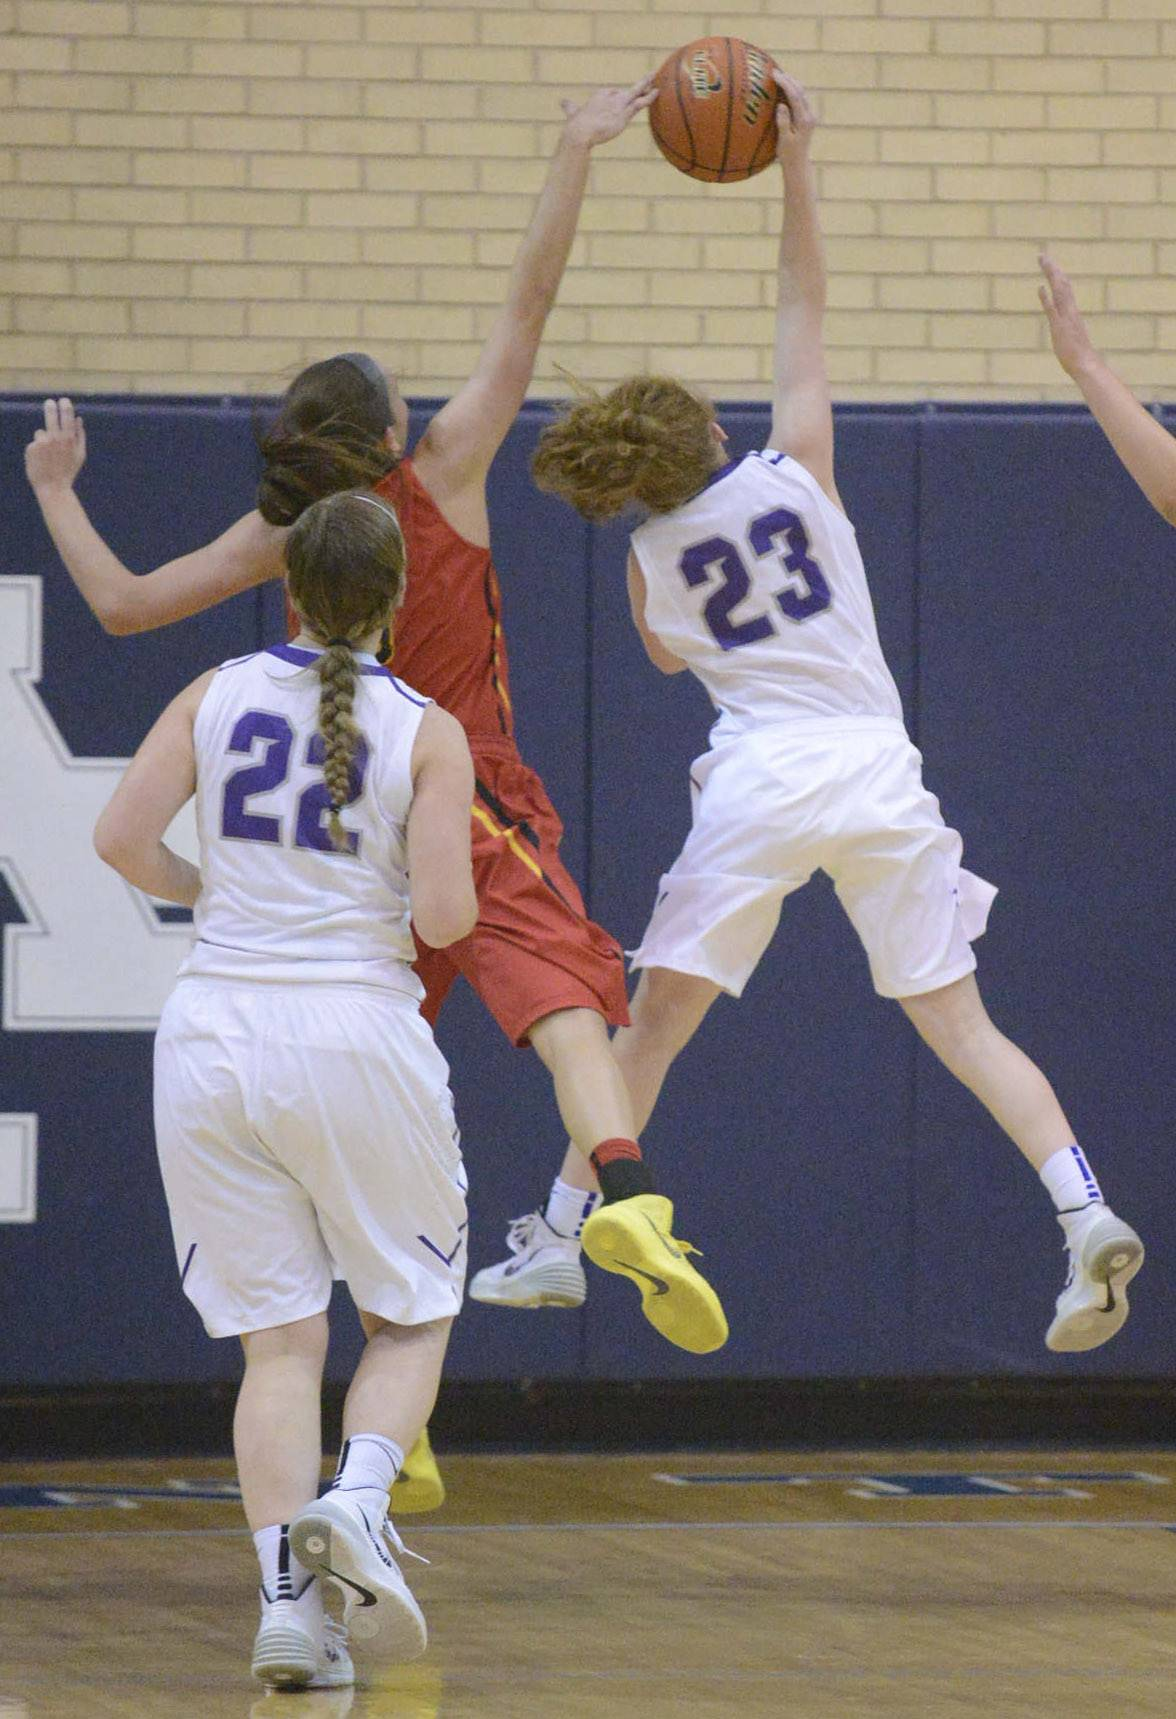 Images from the Batavia vs. Downers Grove North girls sectional semifinal basketball game Tuesday, February 25, 2014 in Addison.